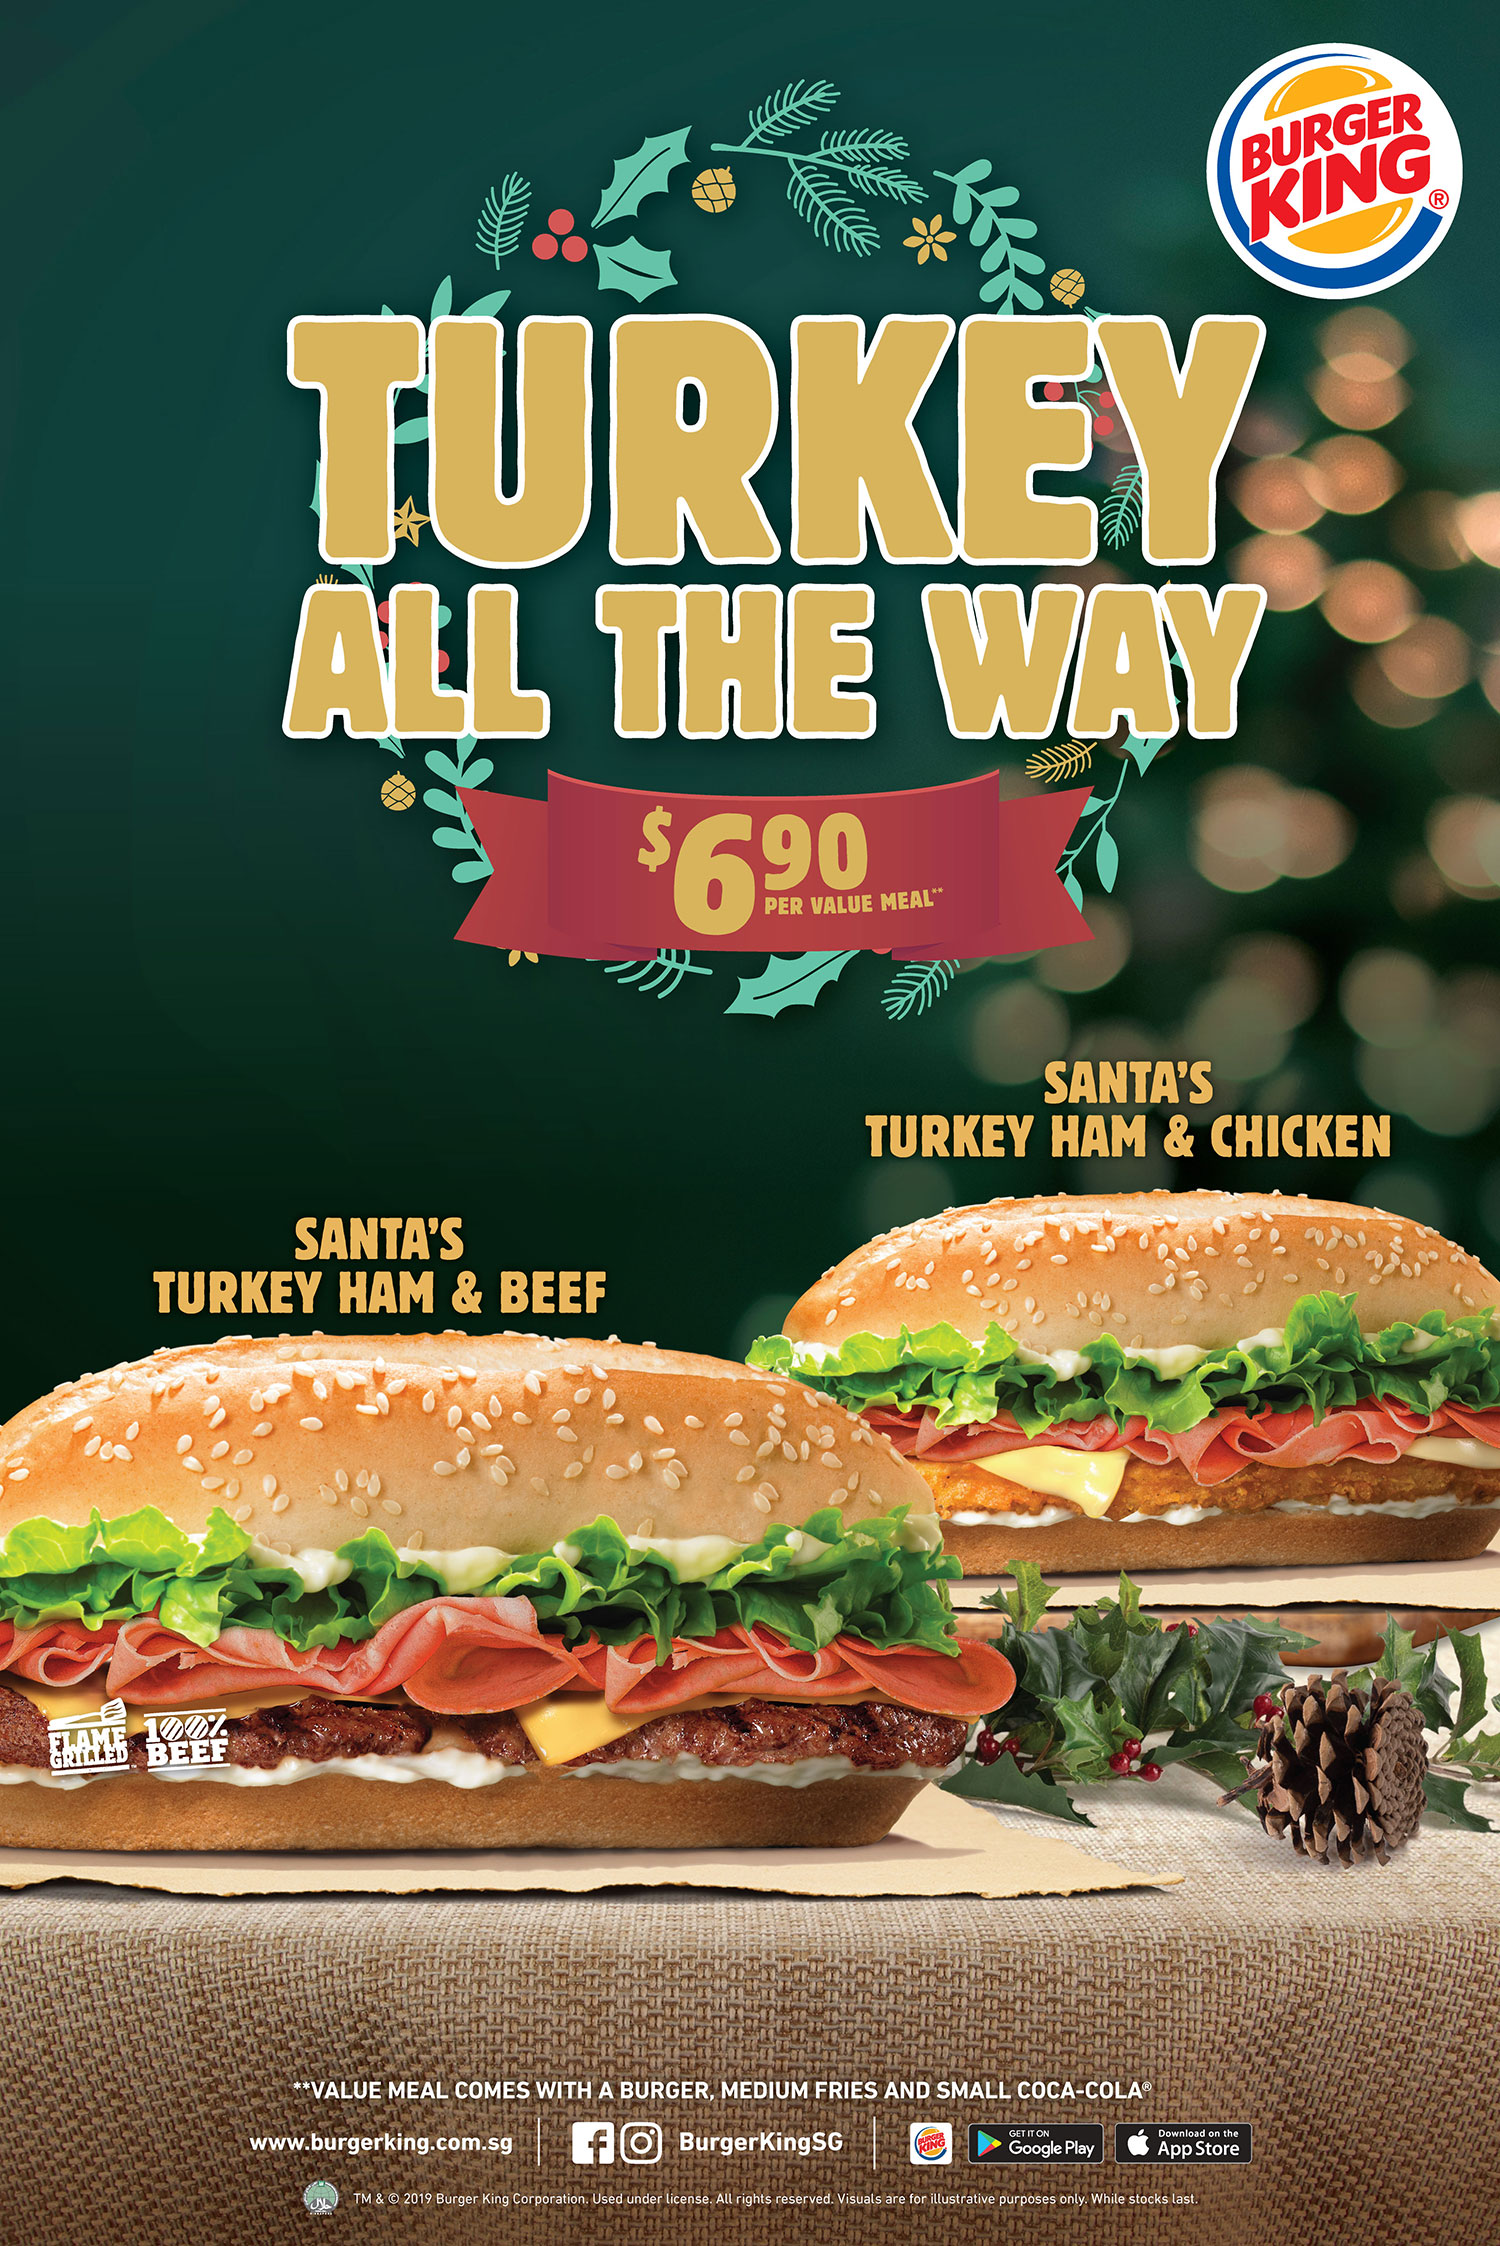 BURGER-KING-Singapore_Turkey-All-The-Way